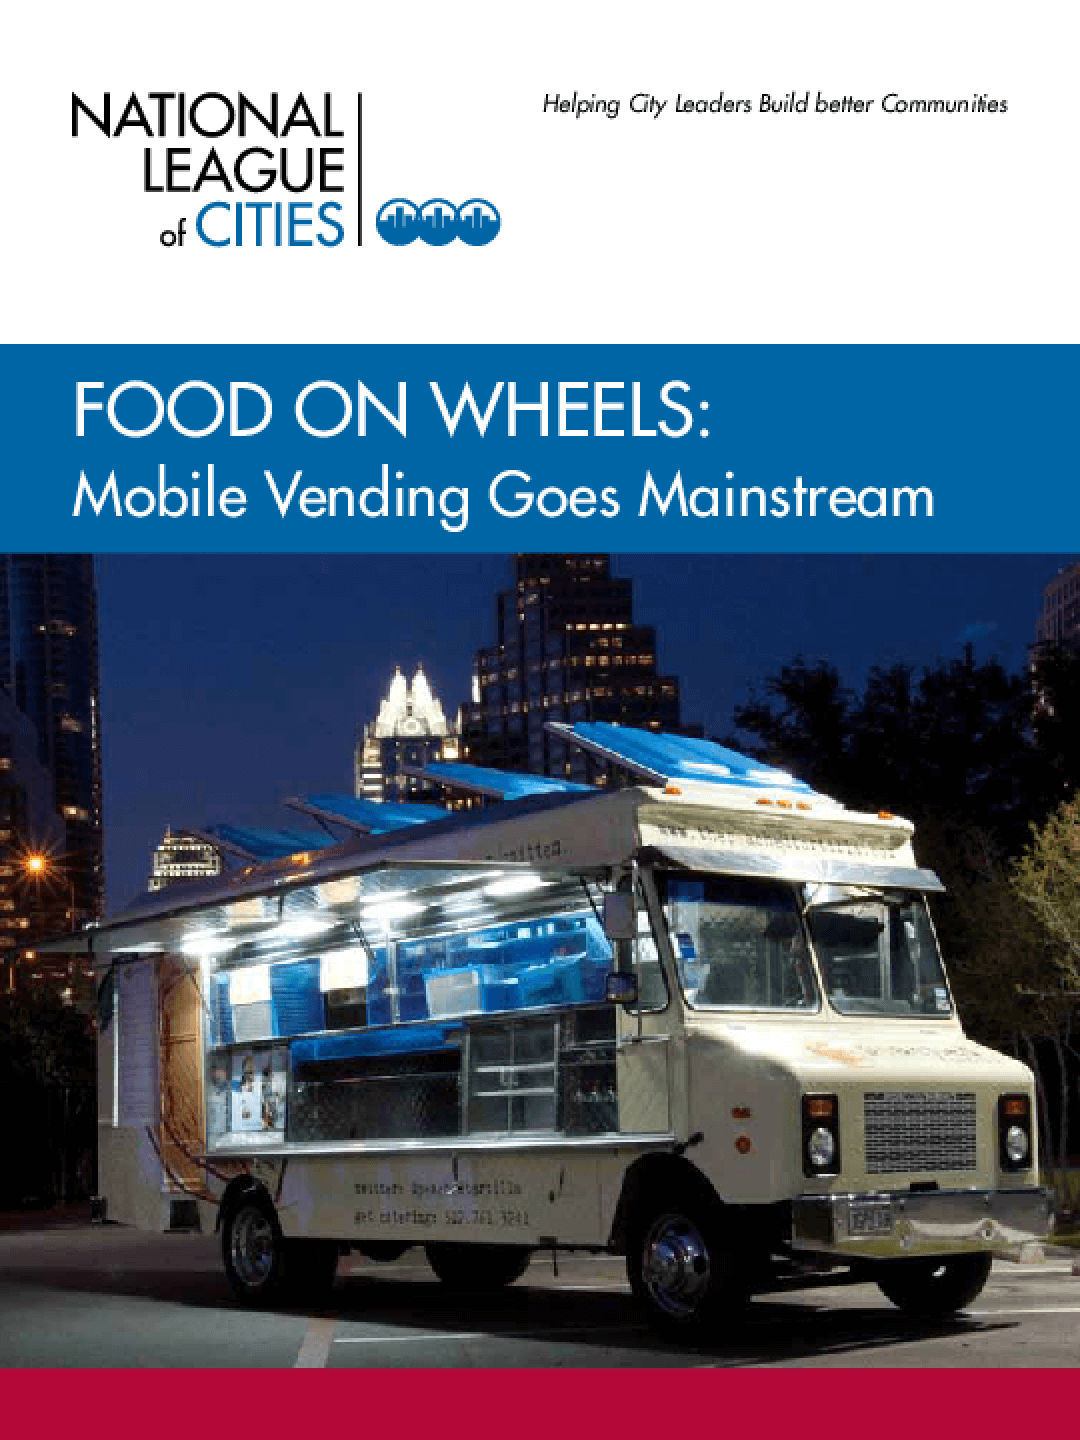 Food on Wheels: Mobile Vending Goes Mainstream